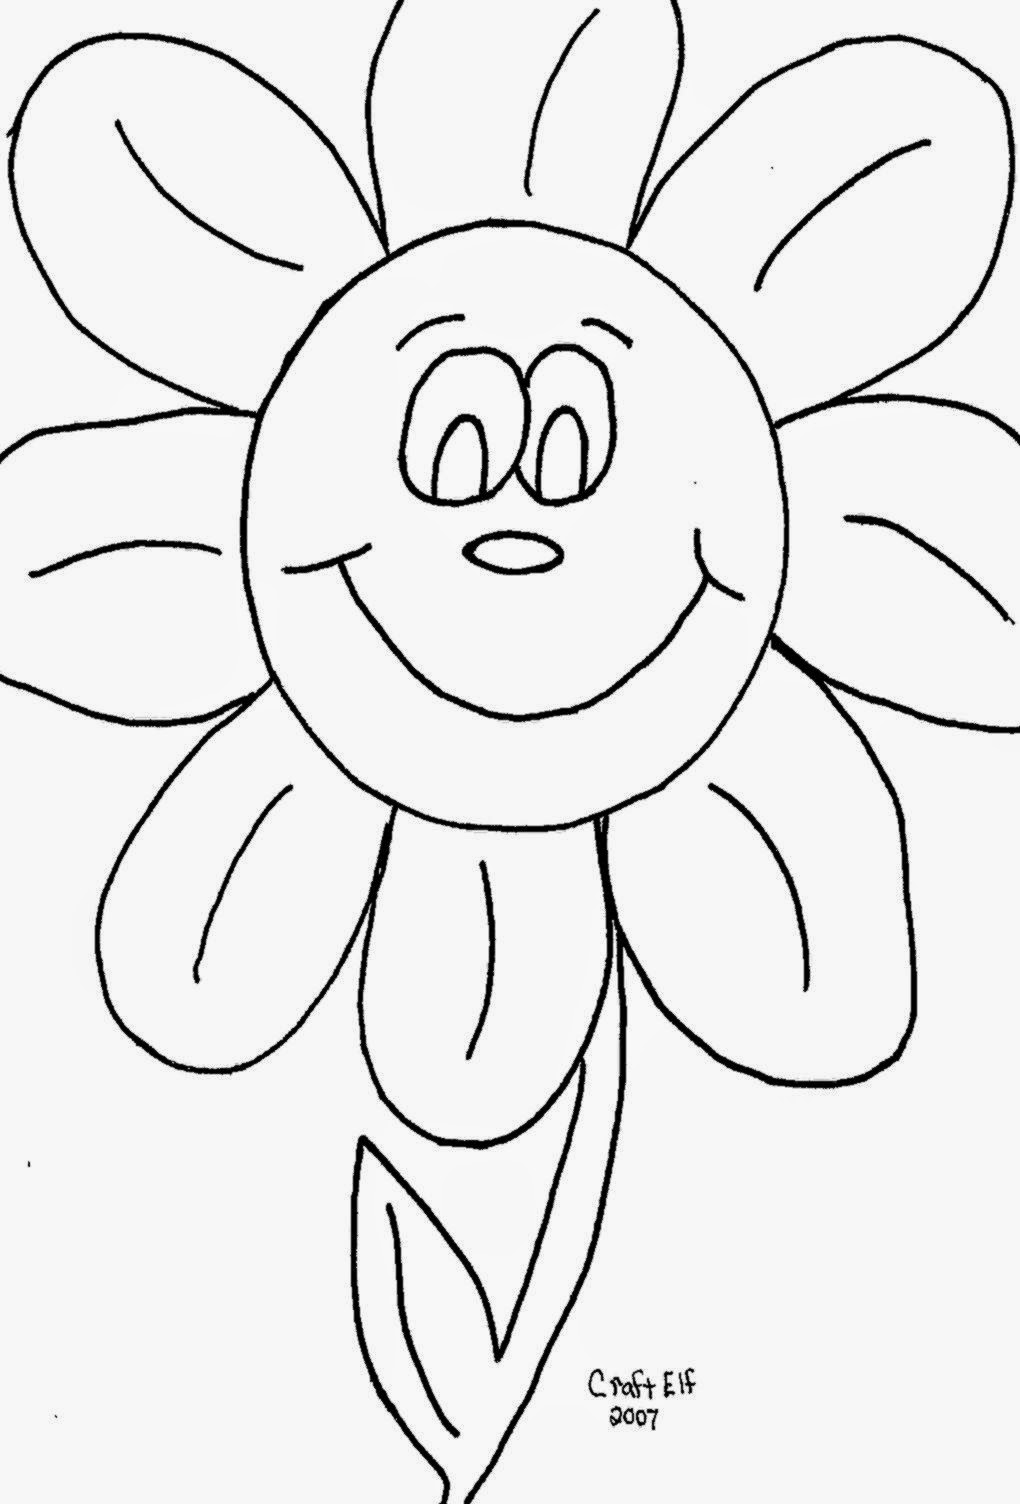 Kindergarten color sheets free coloring sheet for Coloring page for preschool